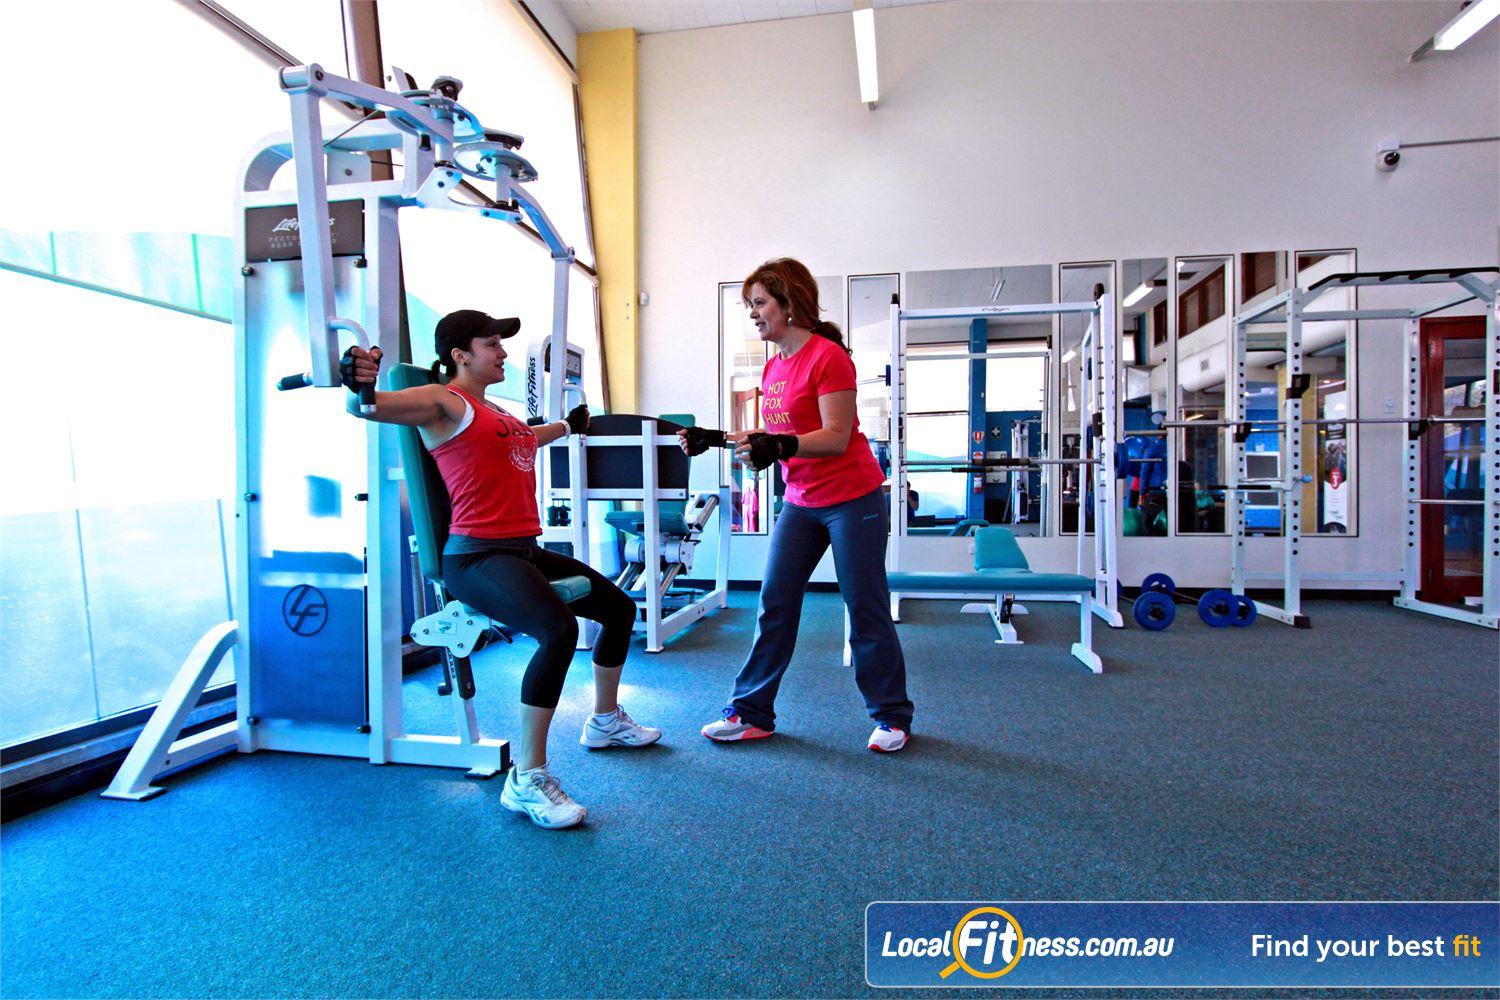 Fernwood Fitness Liverpool We have the right Liverpool gym equipment to help with women's weight loss and strength.